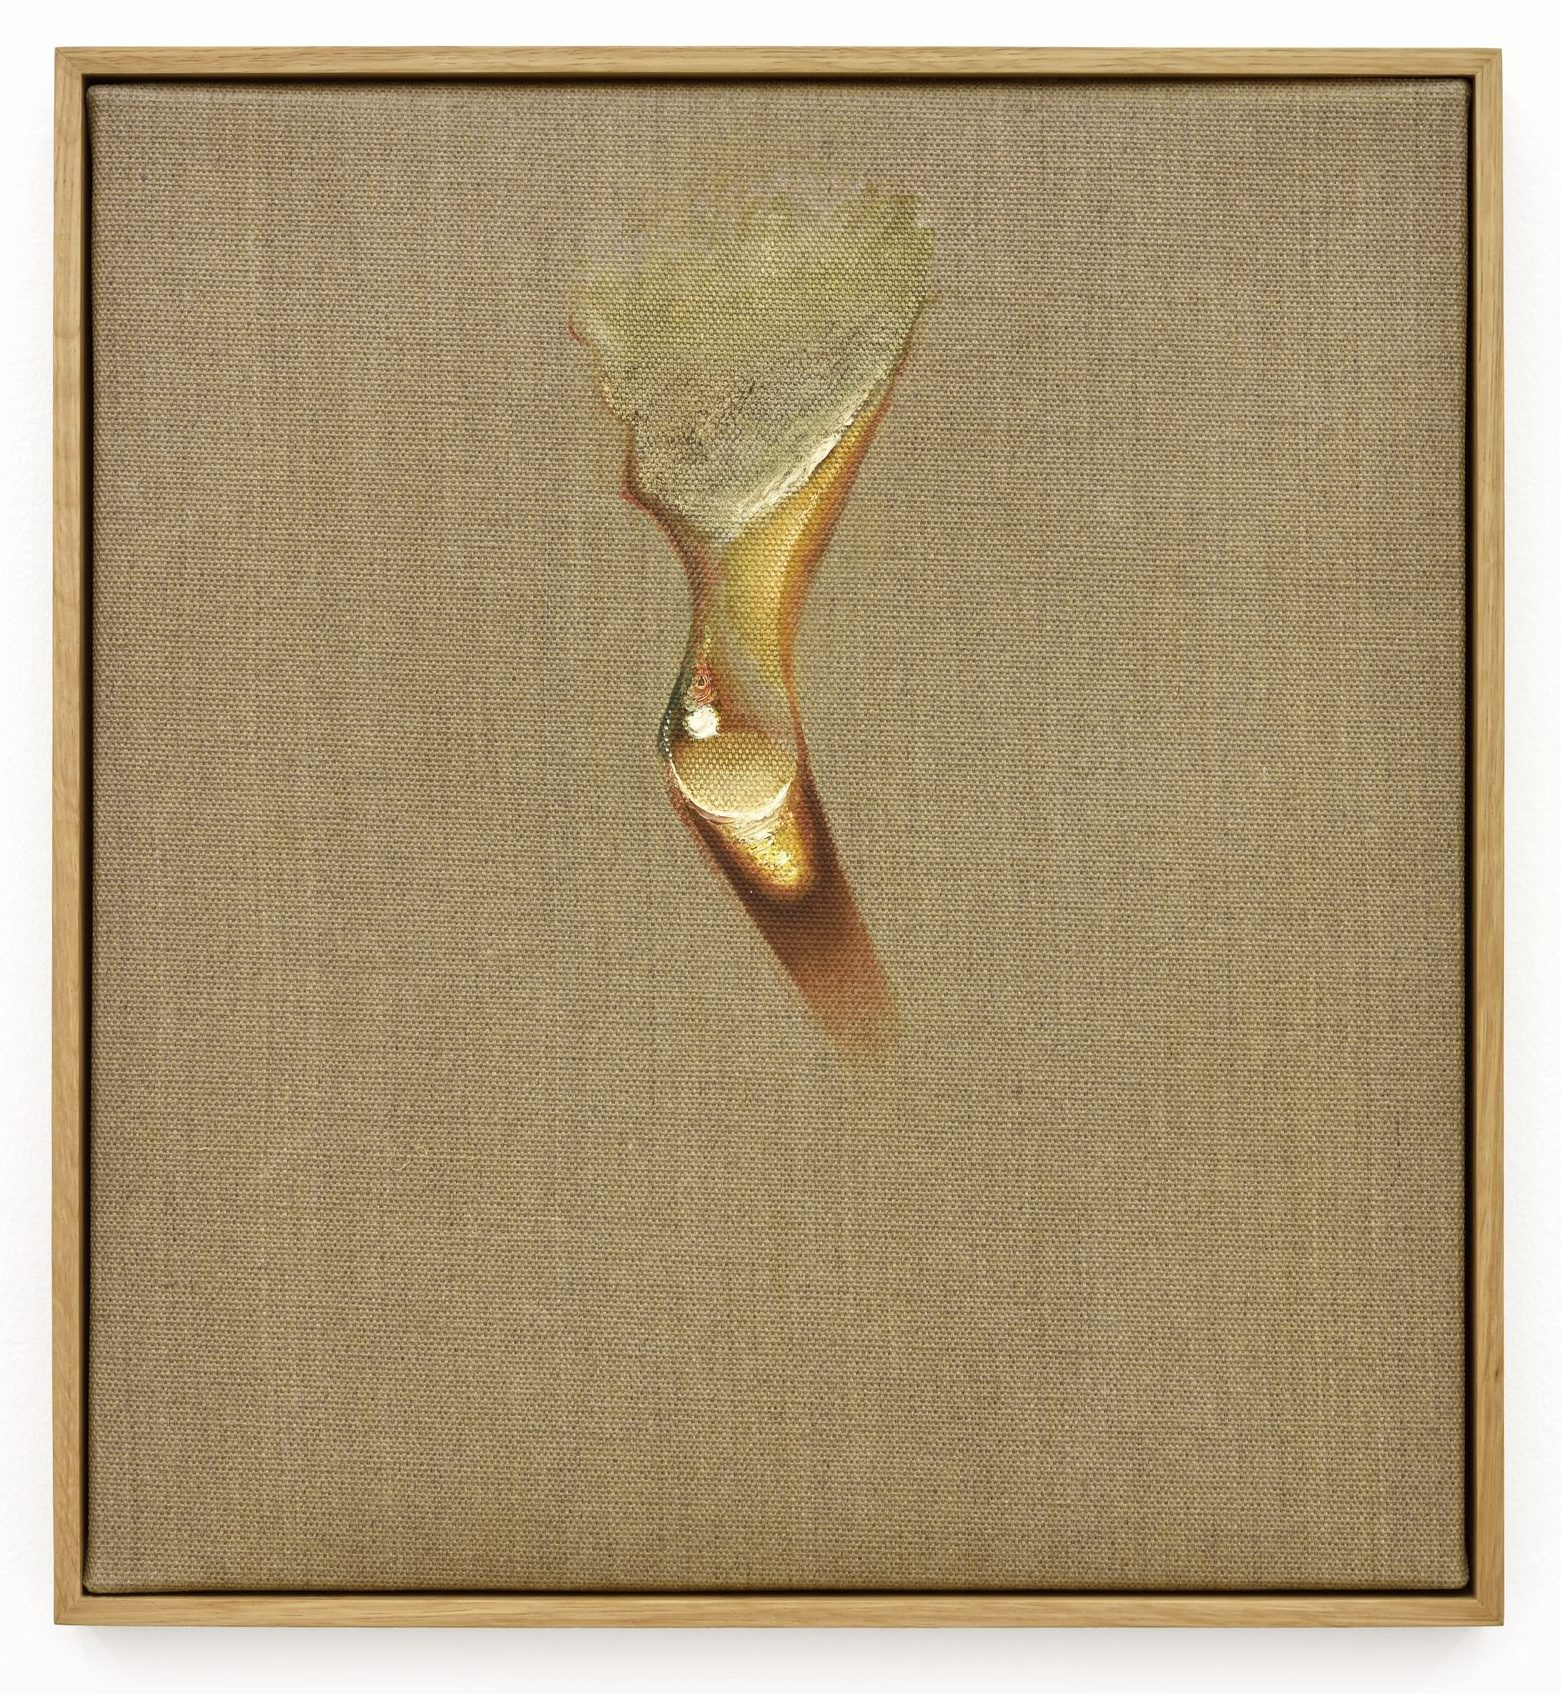 Kim Tschang-Yeul, Waterdrop, 1974 - Oil on canvas - 45 x 41 cm, 17 3/4 x 16 1/8 in / © The Estate of Kim Tschang-Yeul - Courtesy of the Estate and Almine Rech - Photo: Rebecca Fanuele